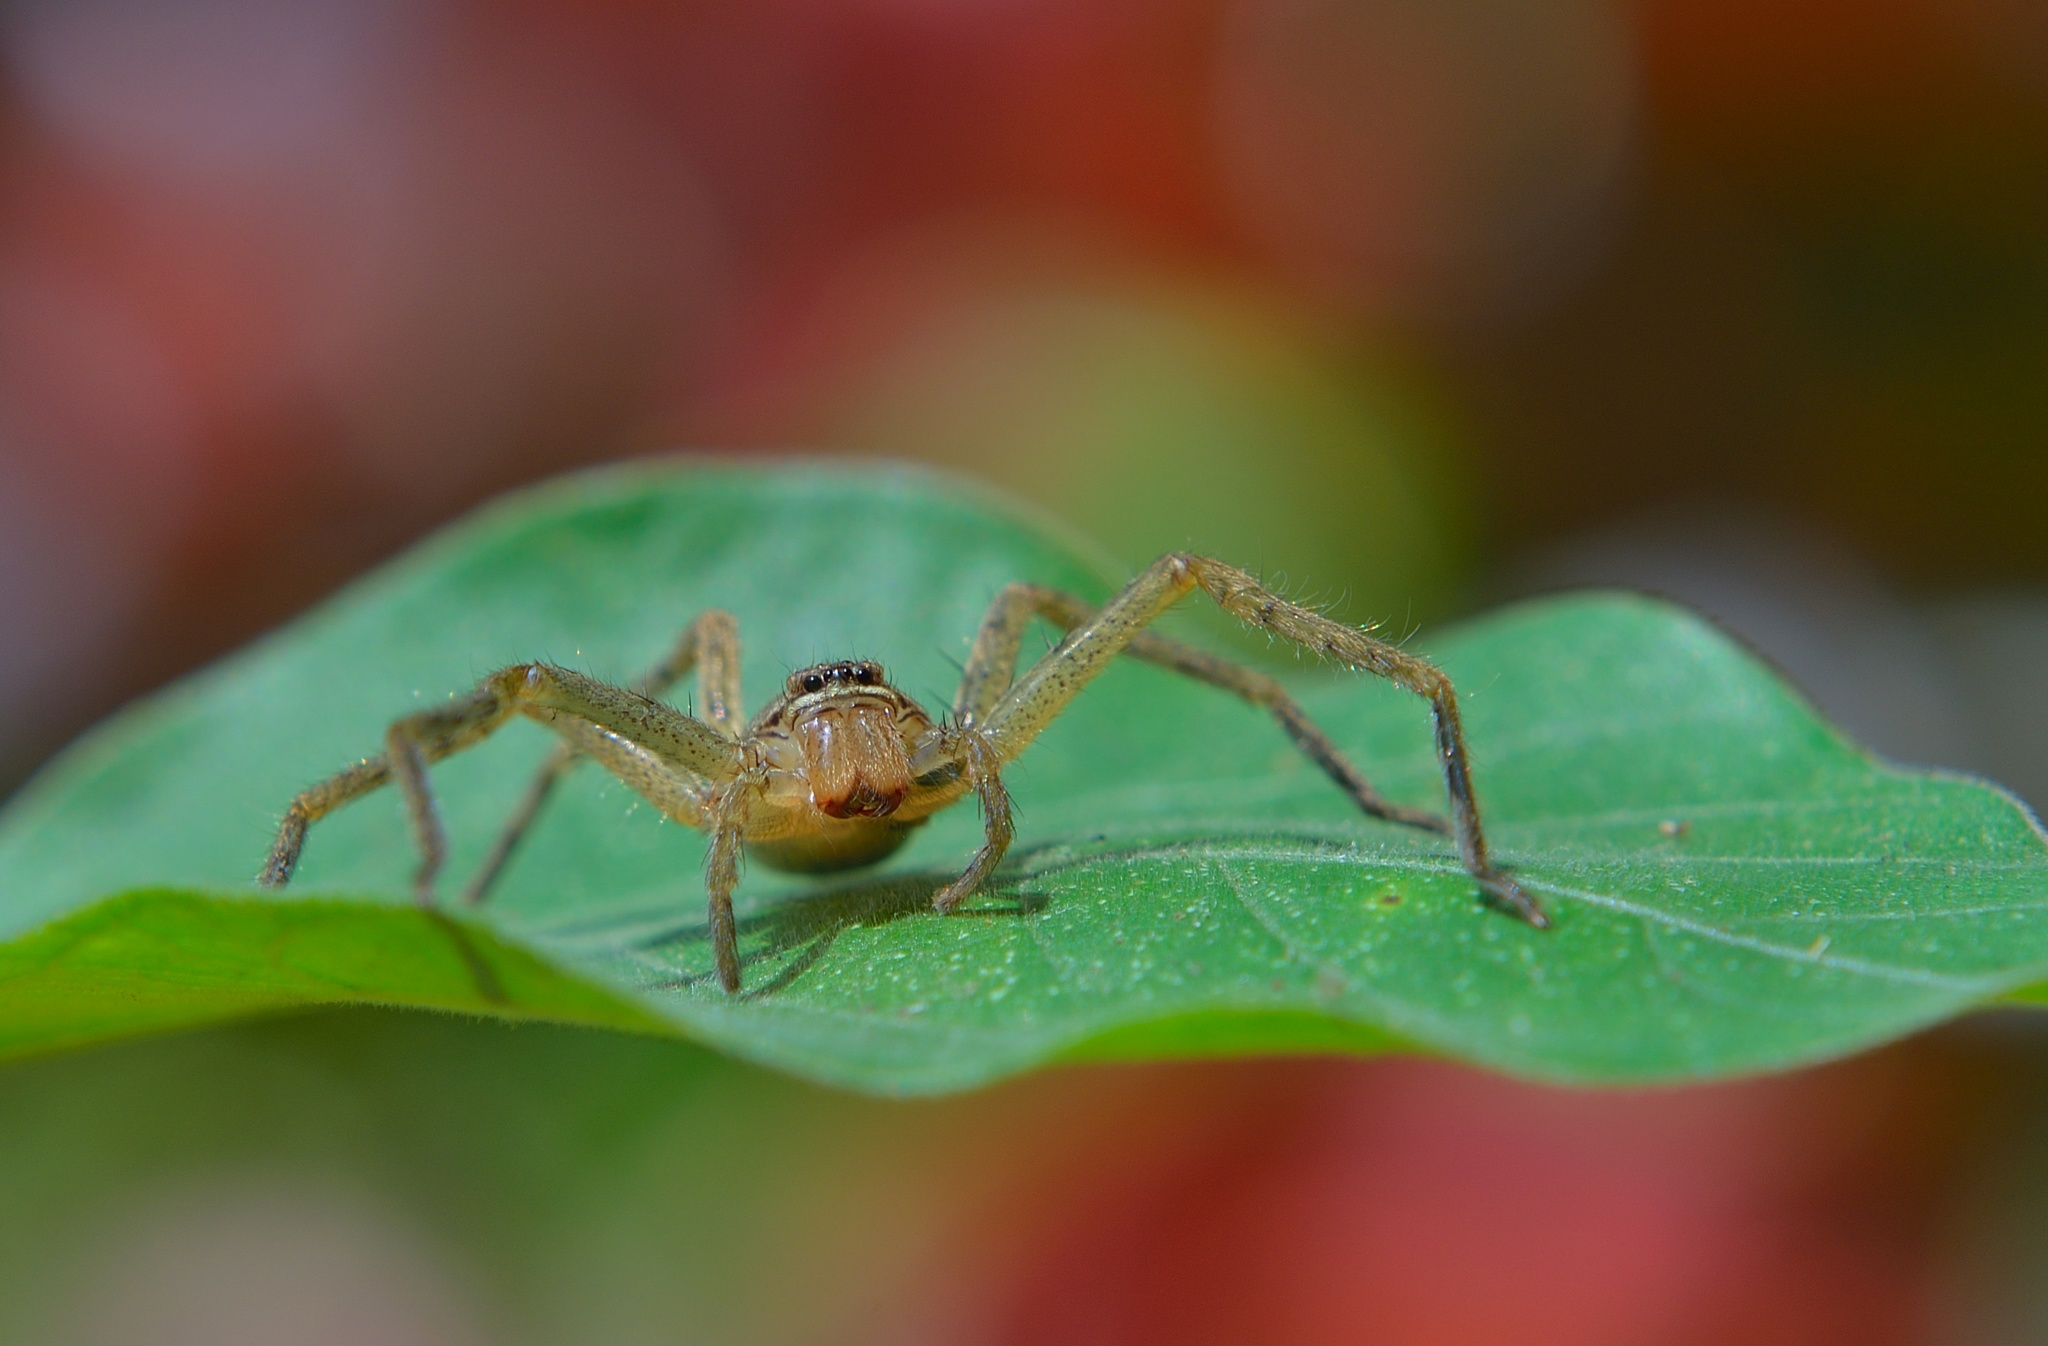 Spider by djerrybansaleng